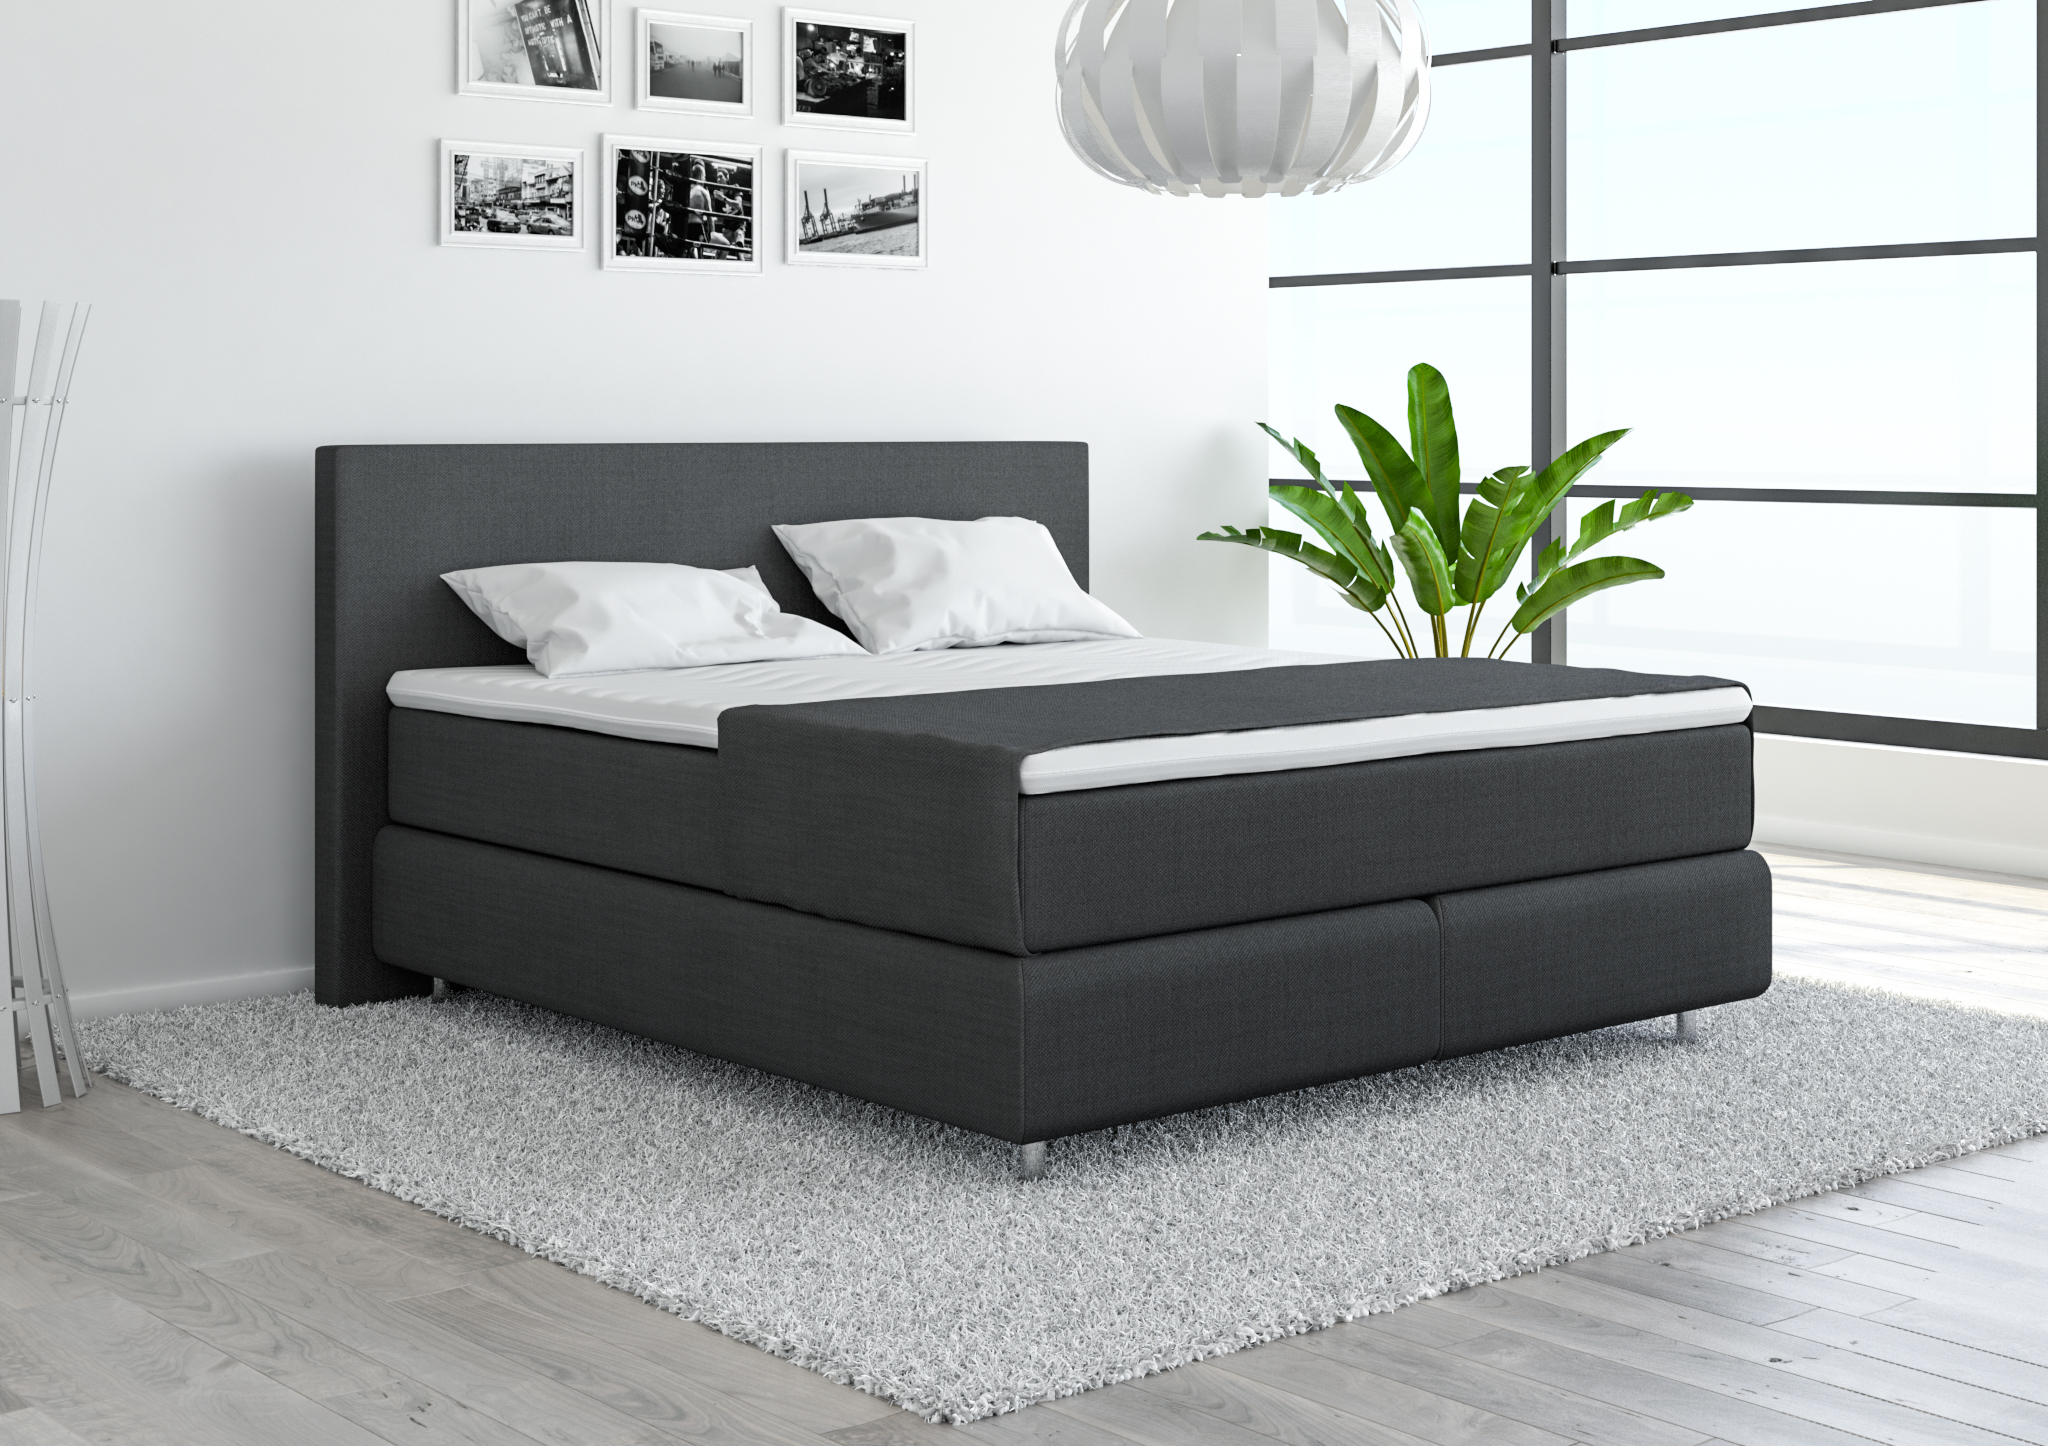 boxspringbett 180x200 g nstig und sofort lieferbar. Black Bedroom Furniture Sets. Home Design Ideas